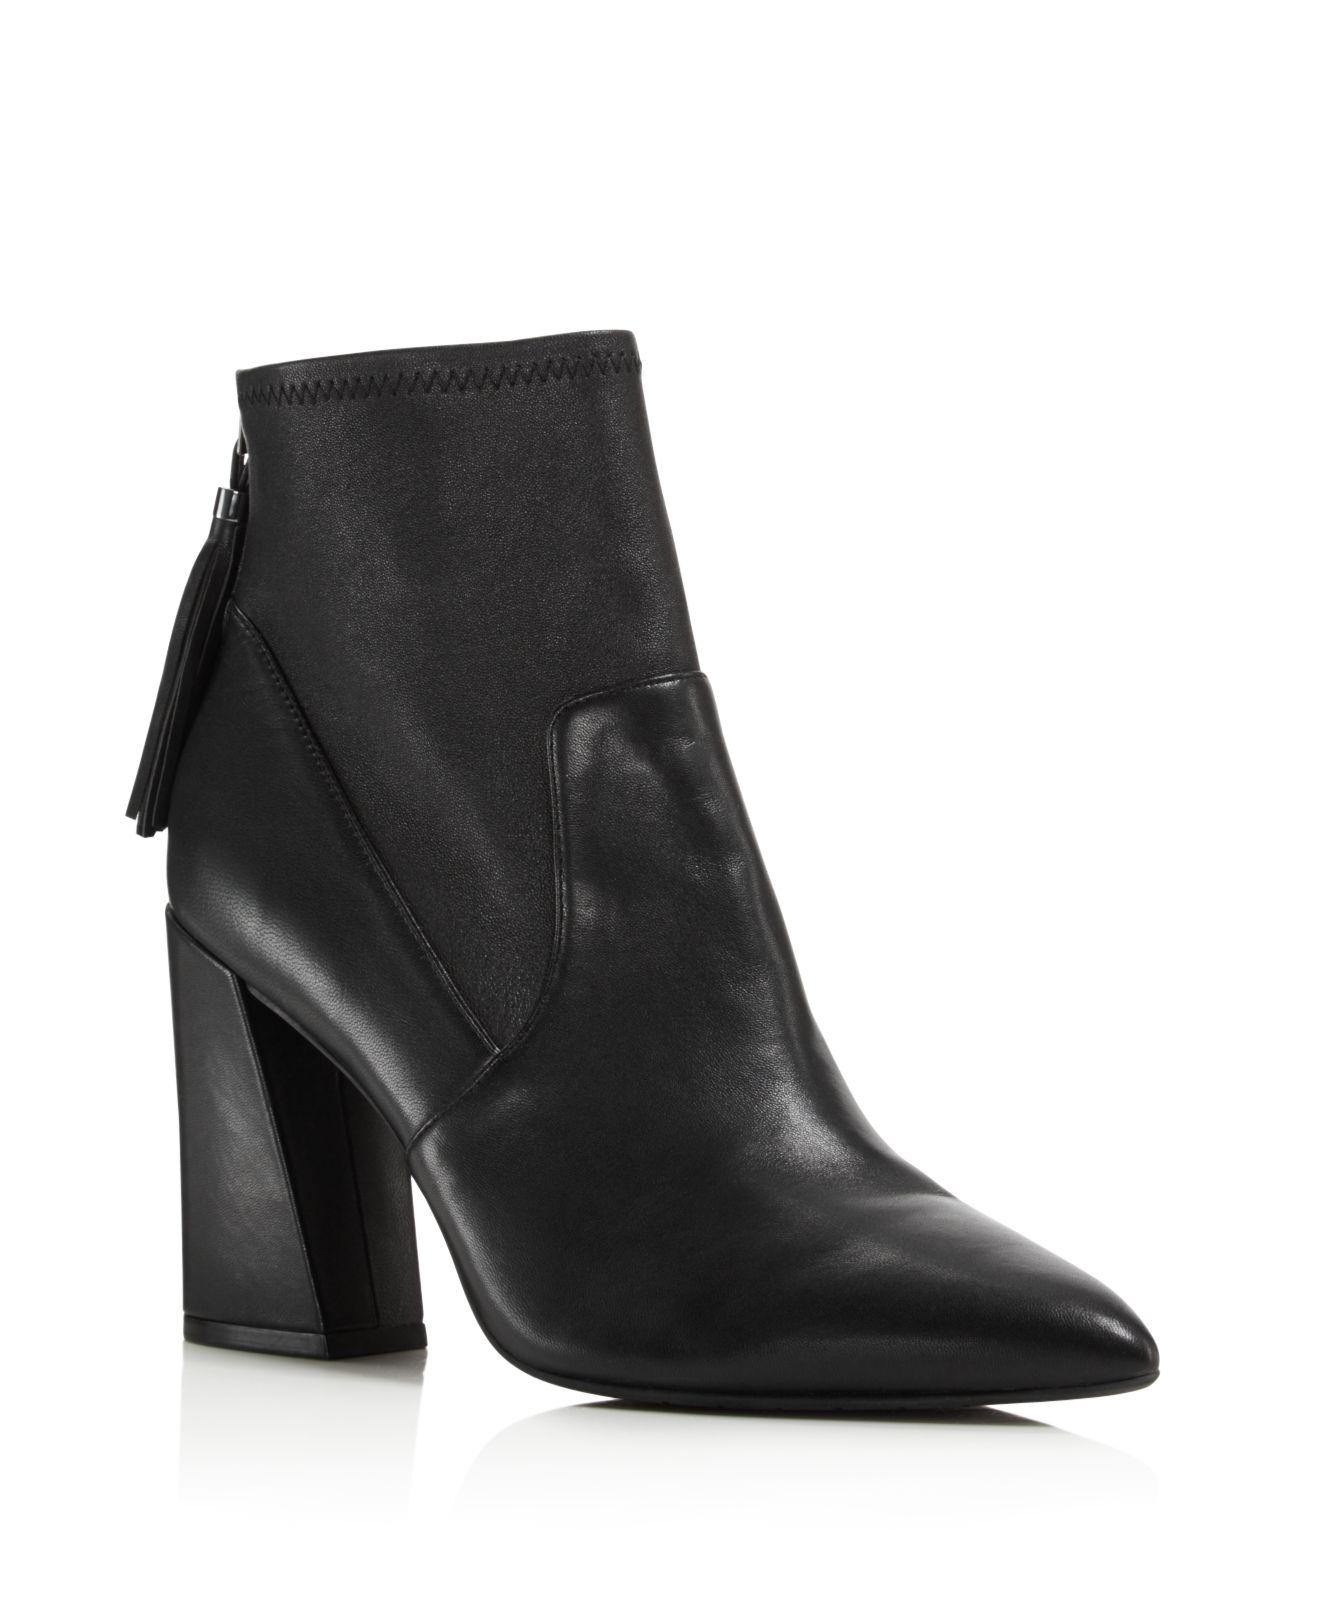 Kenneth Cole. Women's Black Gracelyn Leather High Heel Booties